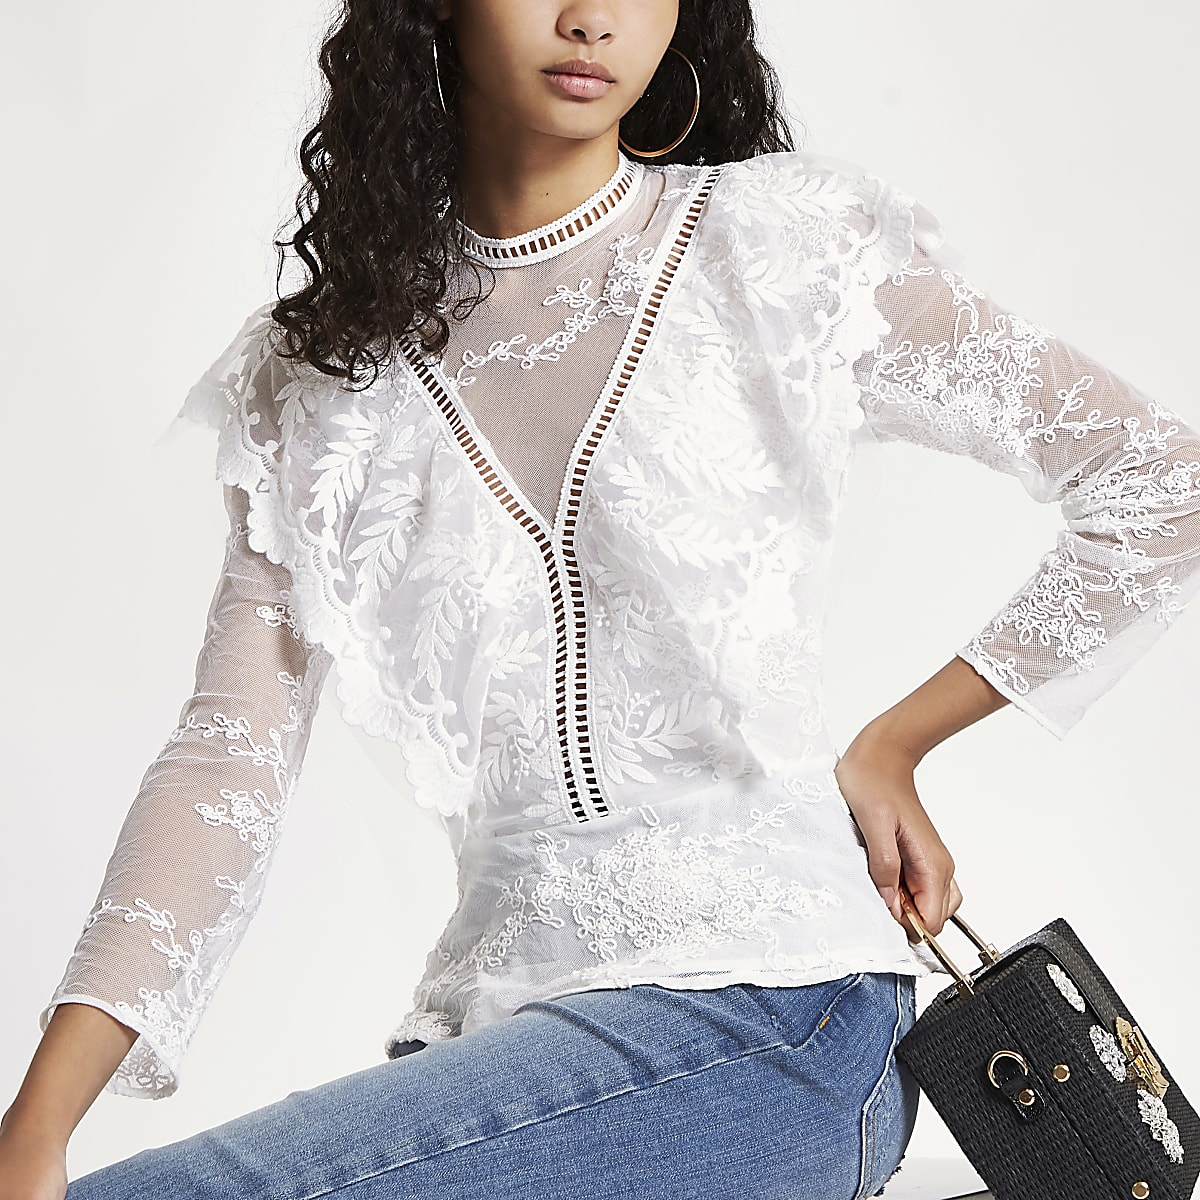 f79eb5f8088892 White lace long sleeve frill top White lace long sleeve frill top ...